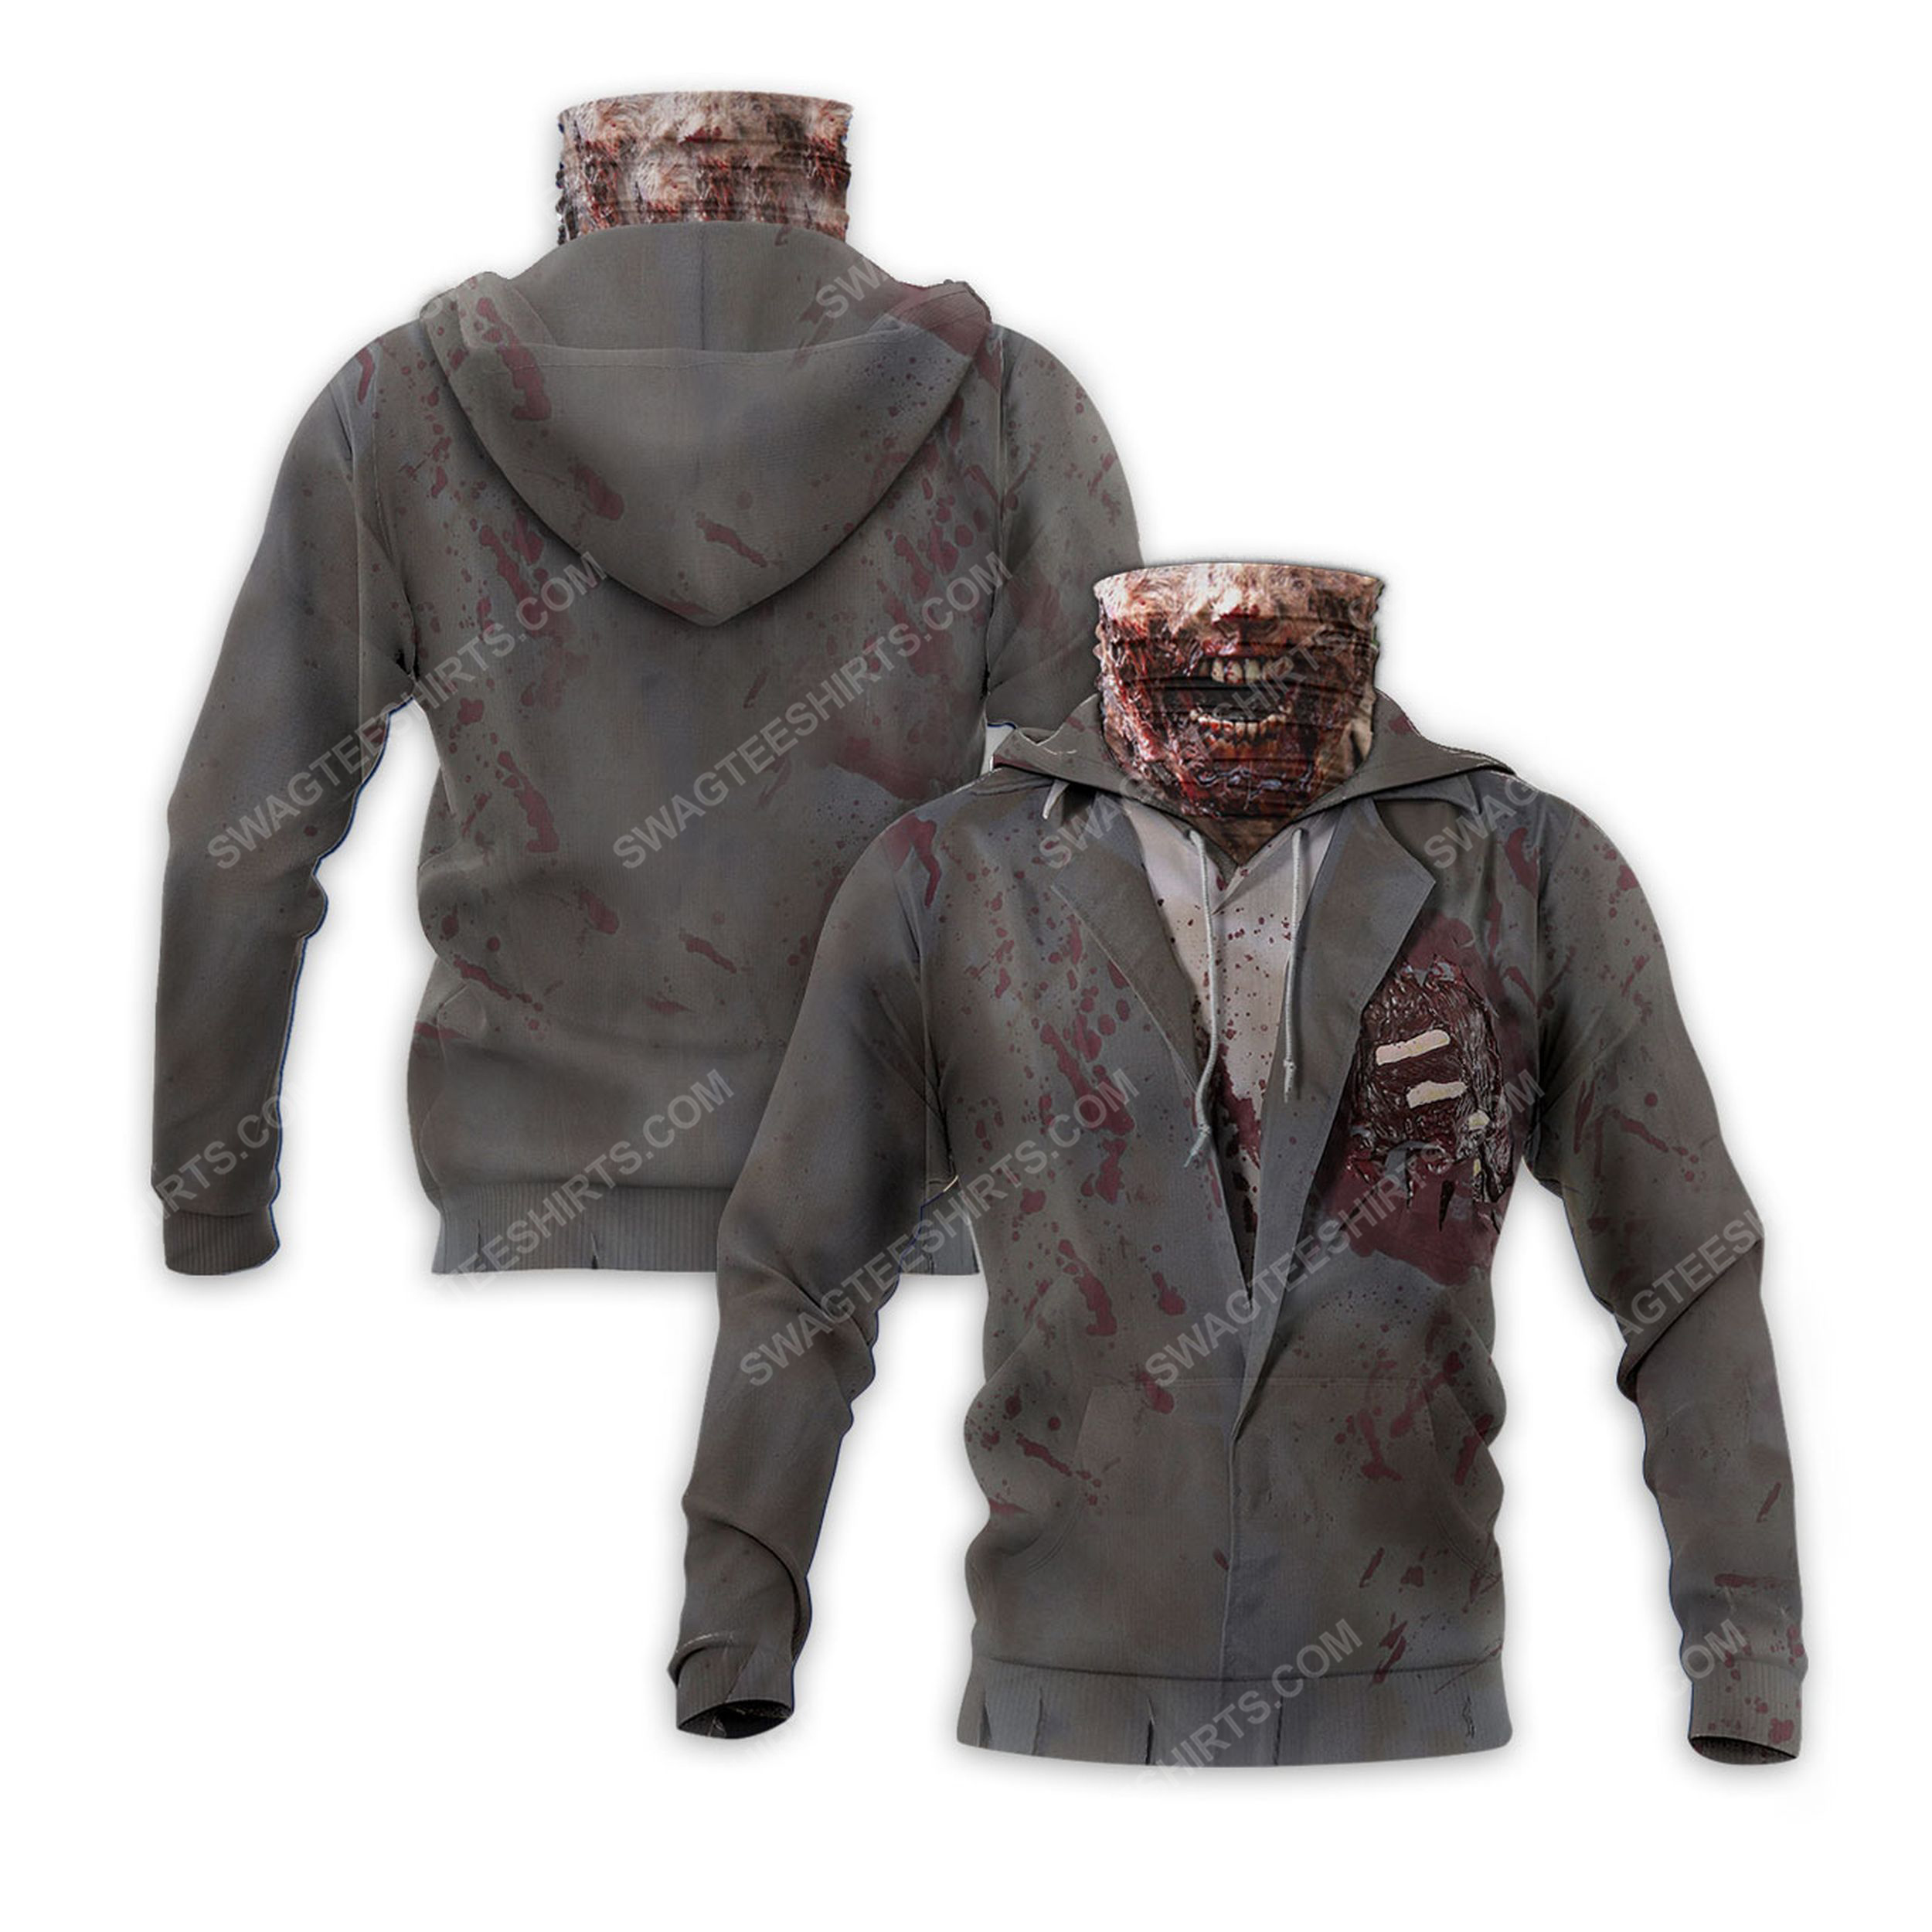 The zombie for halloween full print mask hoodie 2(1) - Copy